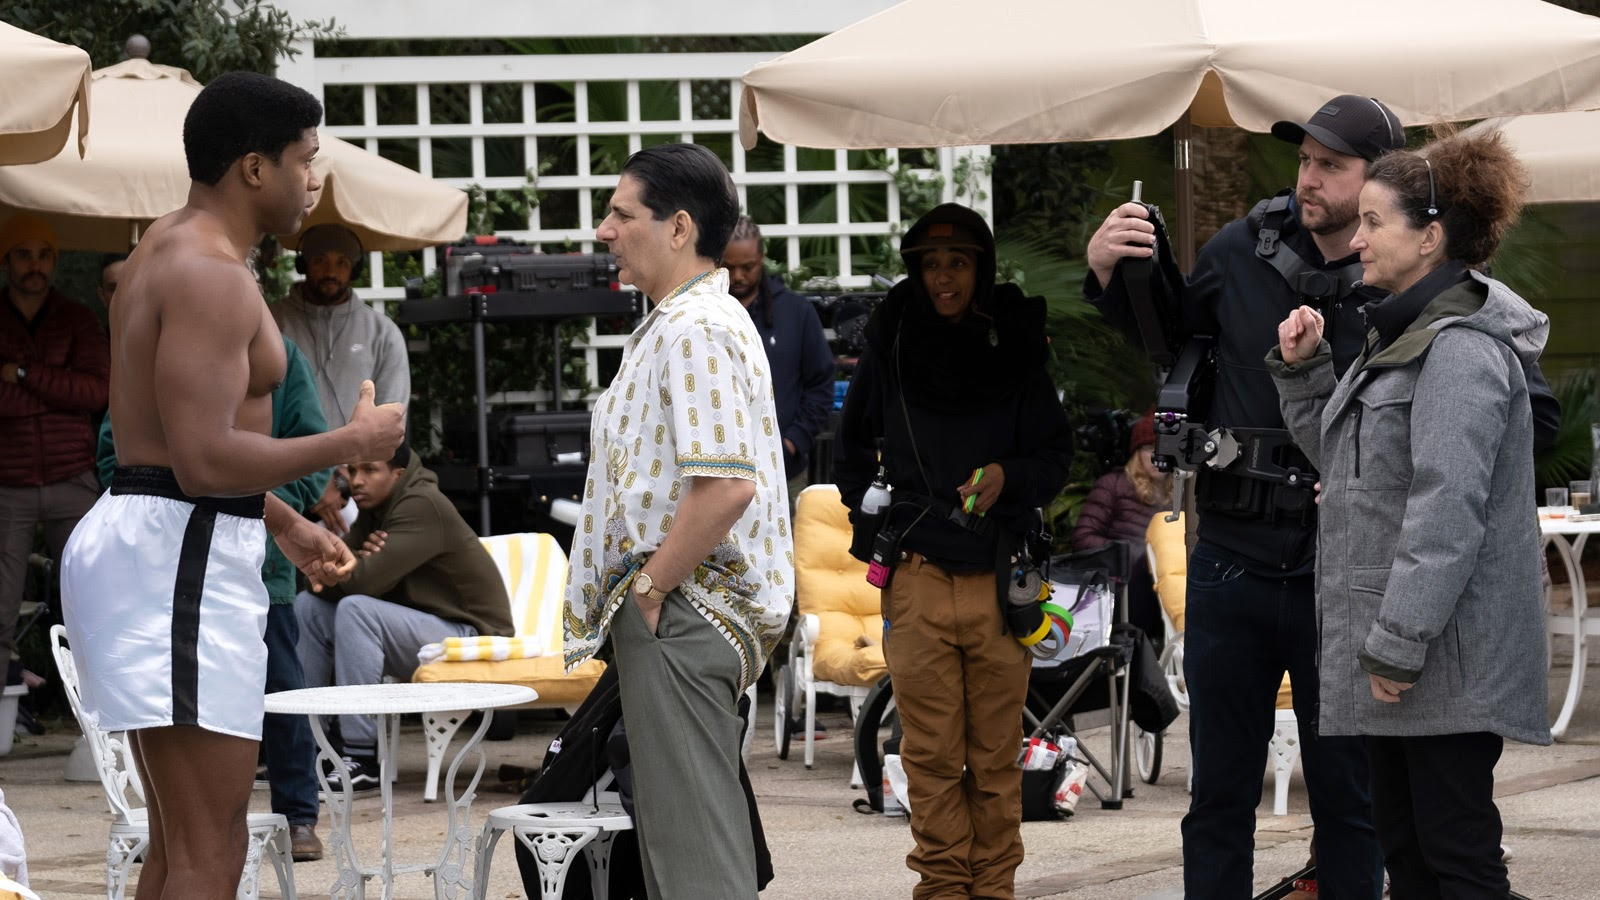 Eli Goree and Michael Imperioli run the scene as Tami Reiker watches.